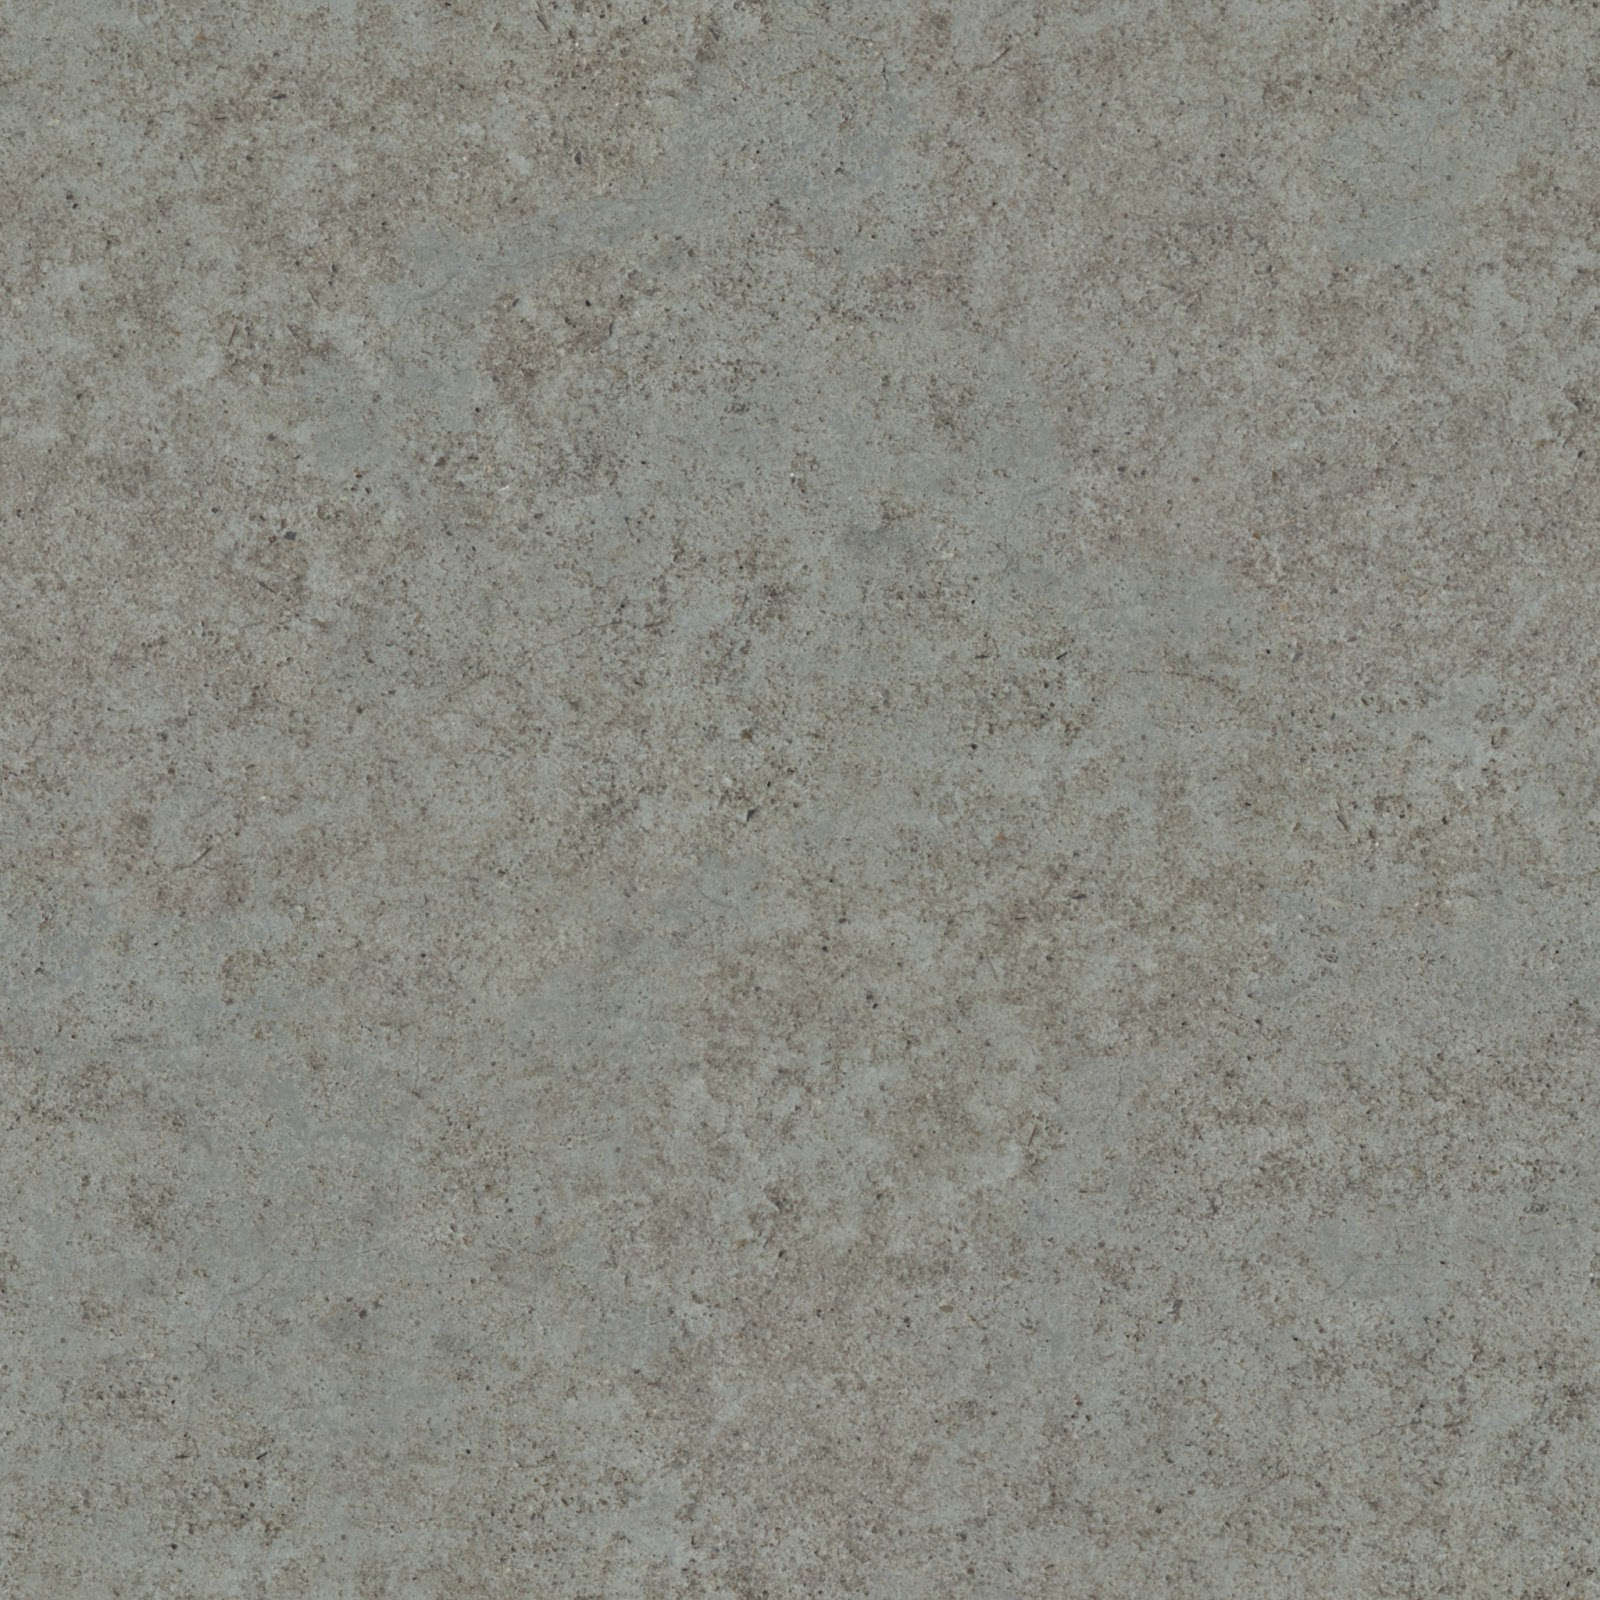 (CONCRETE 8) seamless granite wall smooth pillar texture 2048x2048